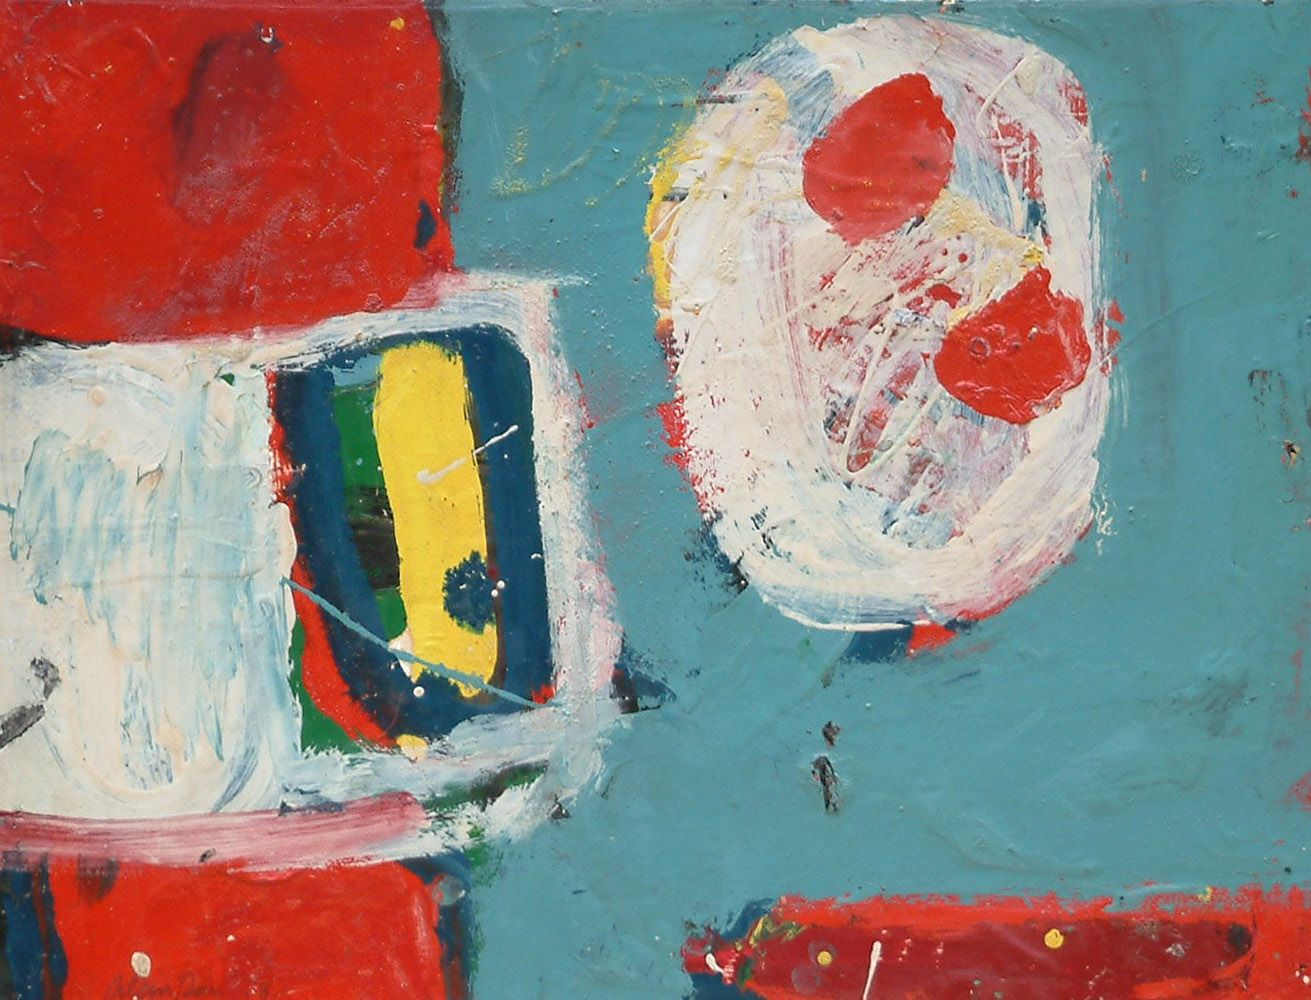 <span class=&#34;link fancybox-details-link&#34;><a href=&#34;/artists/38-alan-davie/works/764/&#34;>View Detail Page</a></span><div class=&#34;artist&#34;><strong>Alan Davie</strong></div> 1920-2014 <div class=&#34;title&#34;><em>Eyes in Search of Adventure Opus 238</em></div> <div class=&#34;signed_and_dated&#34;>signed & dated '58</div> <div class=&#34;medium&#34;>oil on paper laid on card</div> <div class=&#34;dimensions&#34;>41 x 53 cms (16 x 21 ins)</div>